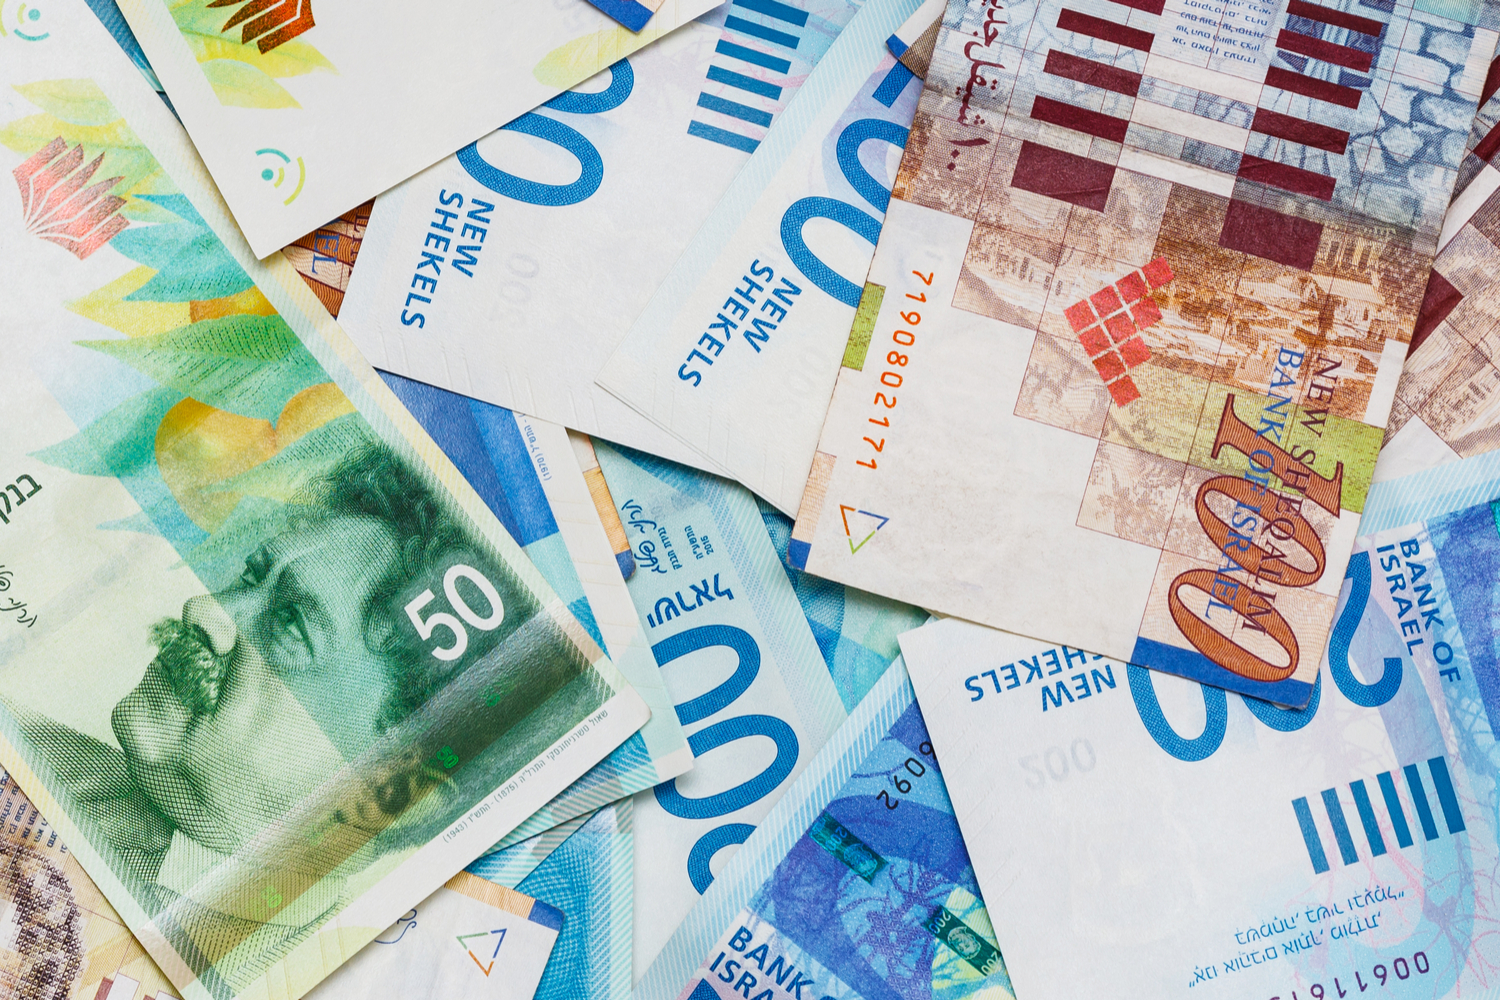 Israel's Central Bank Considers Issuing a Digital Shekel